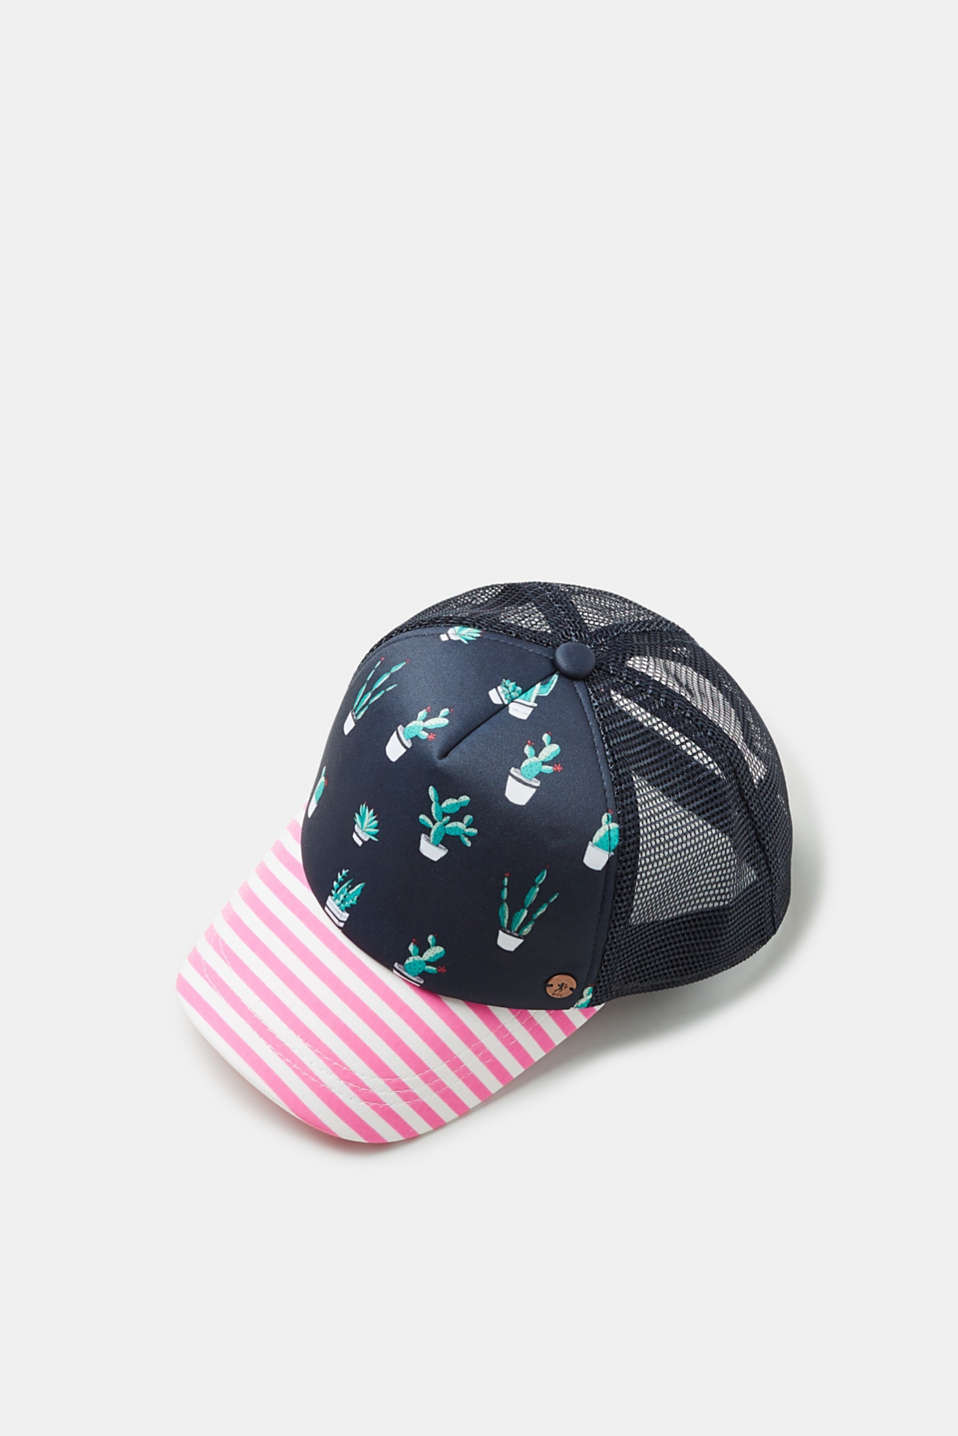 edc - Trucker cap with a cacti print and stripes